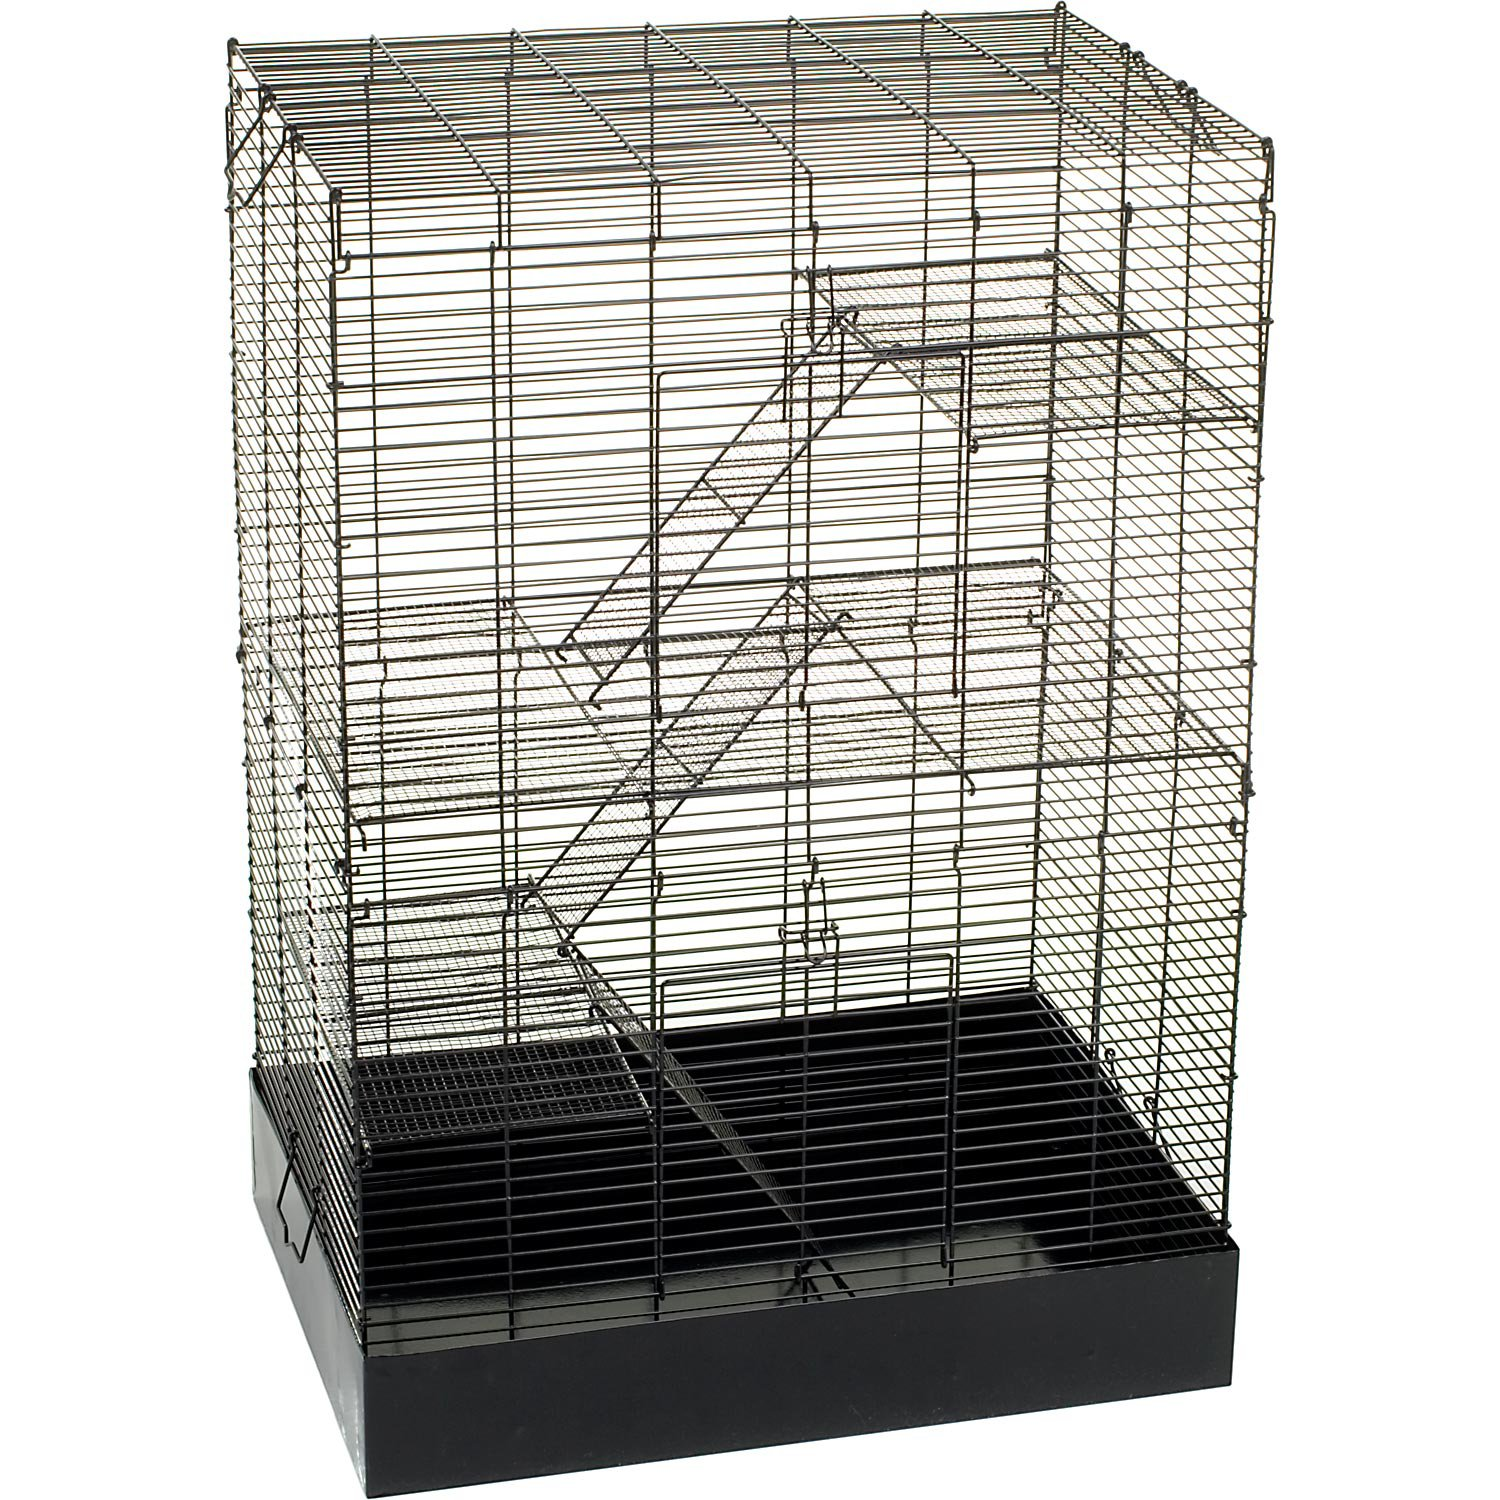 You & Me Rat Manor Habitat | Petco